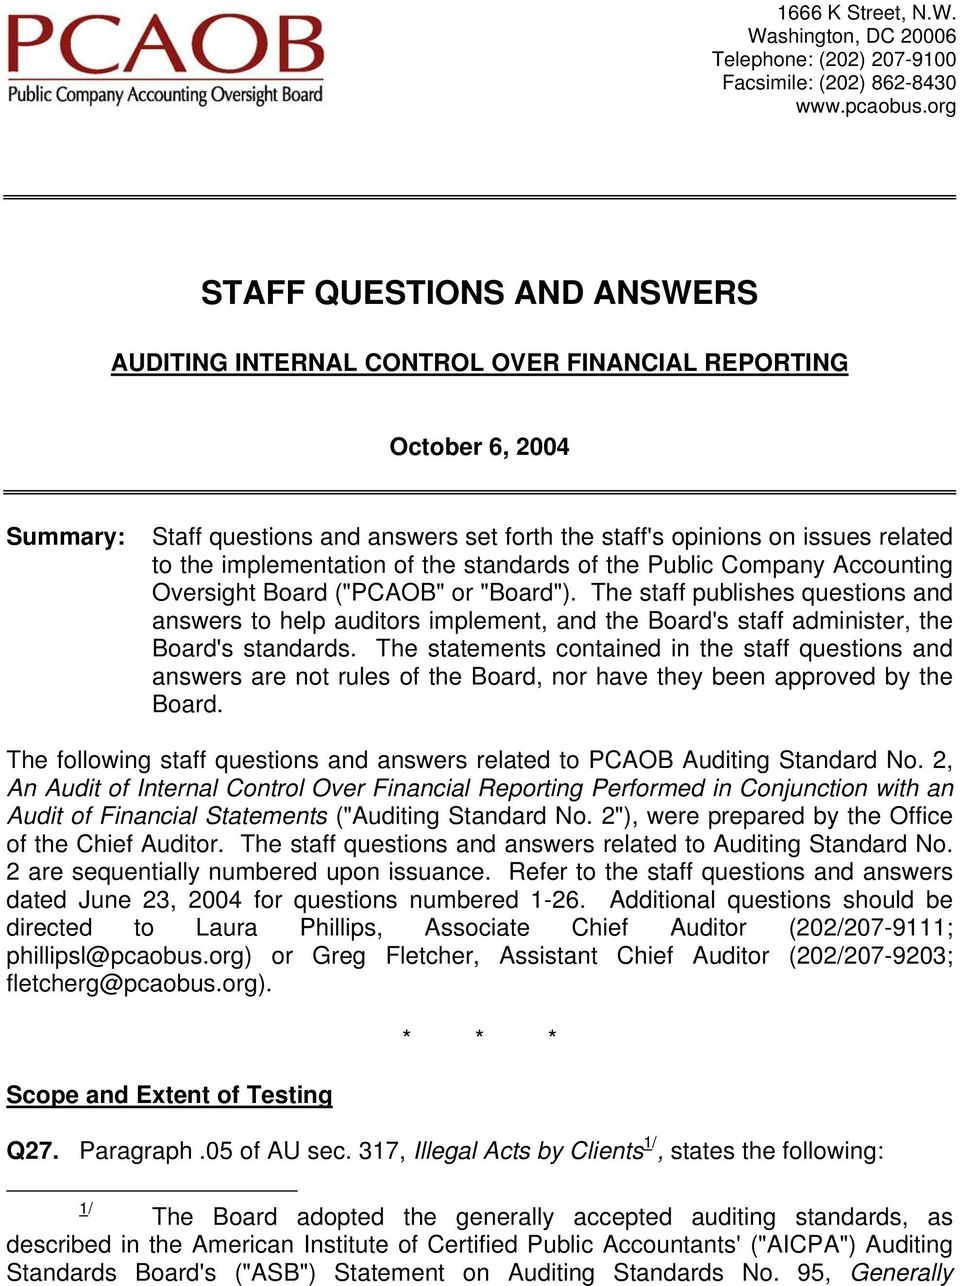 "standards of the Public Company Accounting Oversight Board (""PCAOB"" or ""Board"")."